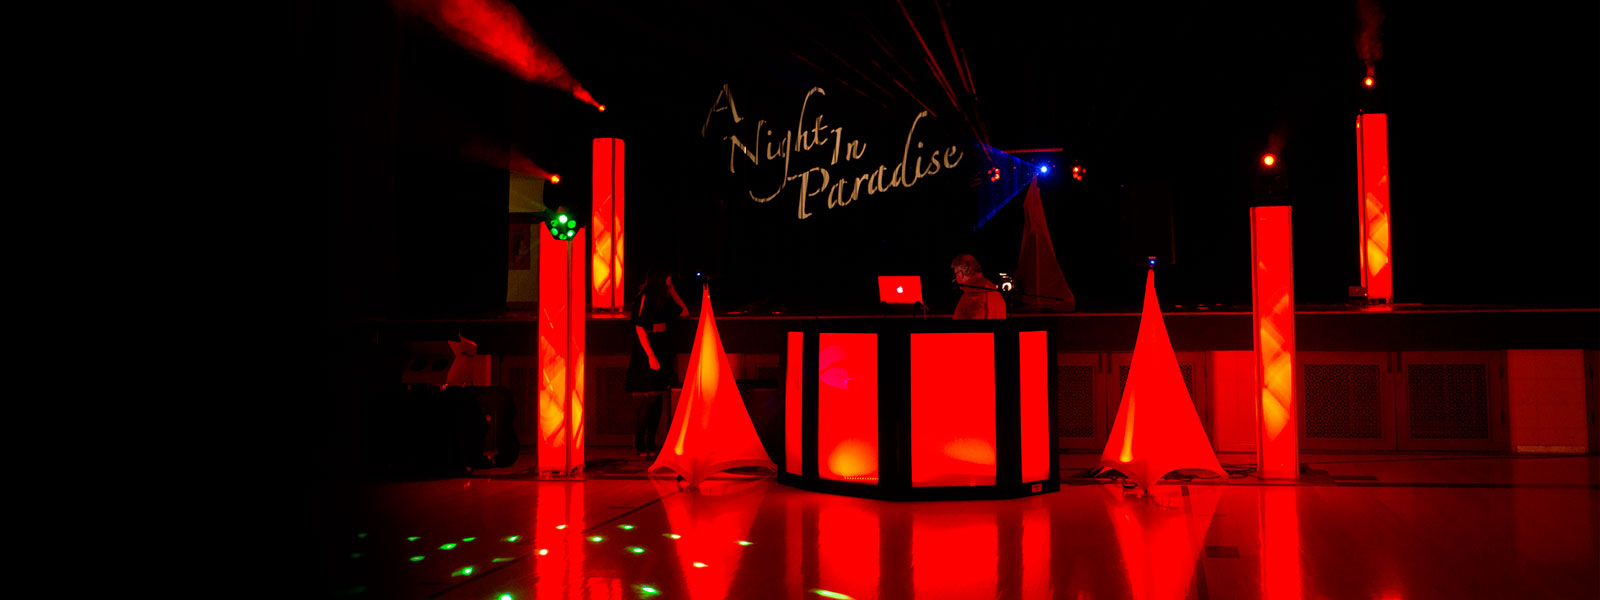 Custom Lighting for your event - Party Hits Music and Light Show - Wisconsin DJ Dance Weddings Events